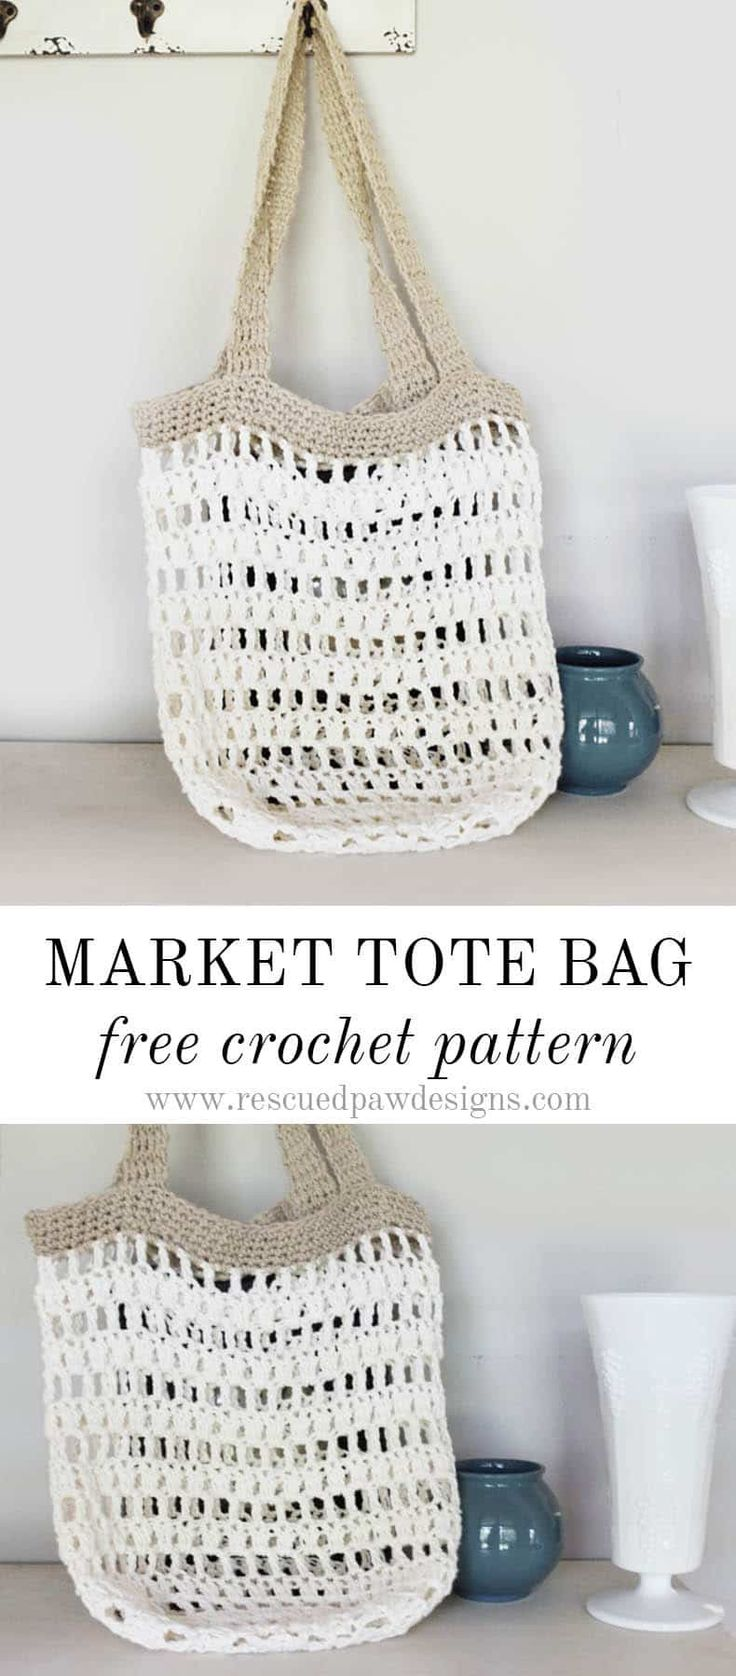 Free Crochet Tote Bag Pattern by Rescued Paw Designs – Get the free pattern and …